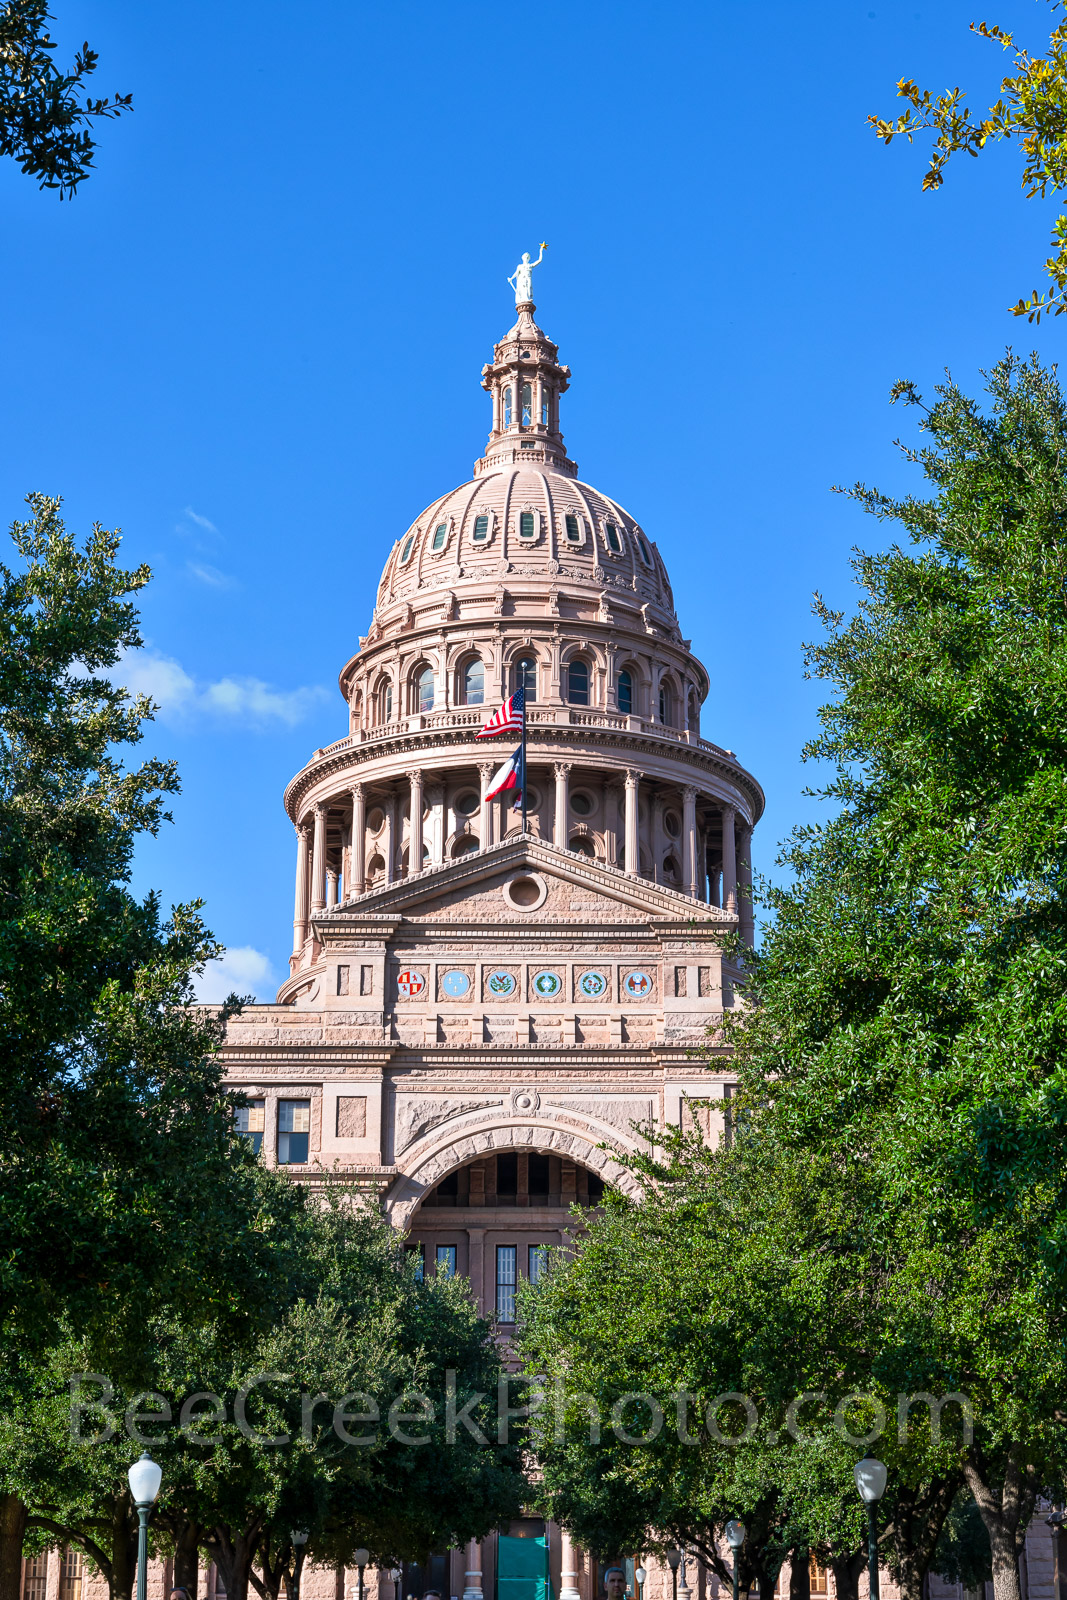 Capitol, Capital, Texas, vertical, building, Austin, south view, Congress ave., Capitol of Texas, Dome, red granite, renaissance rivival architecture, state capital, state capitol, images of texas, , photo